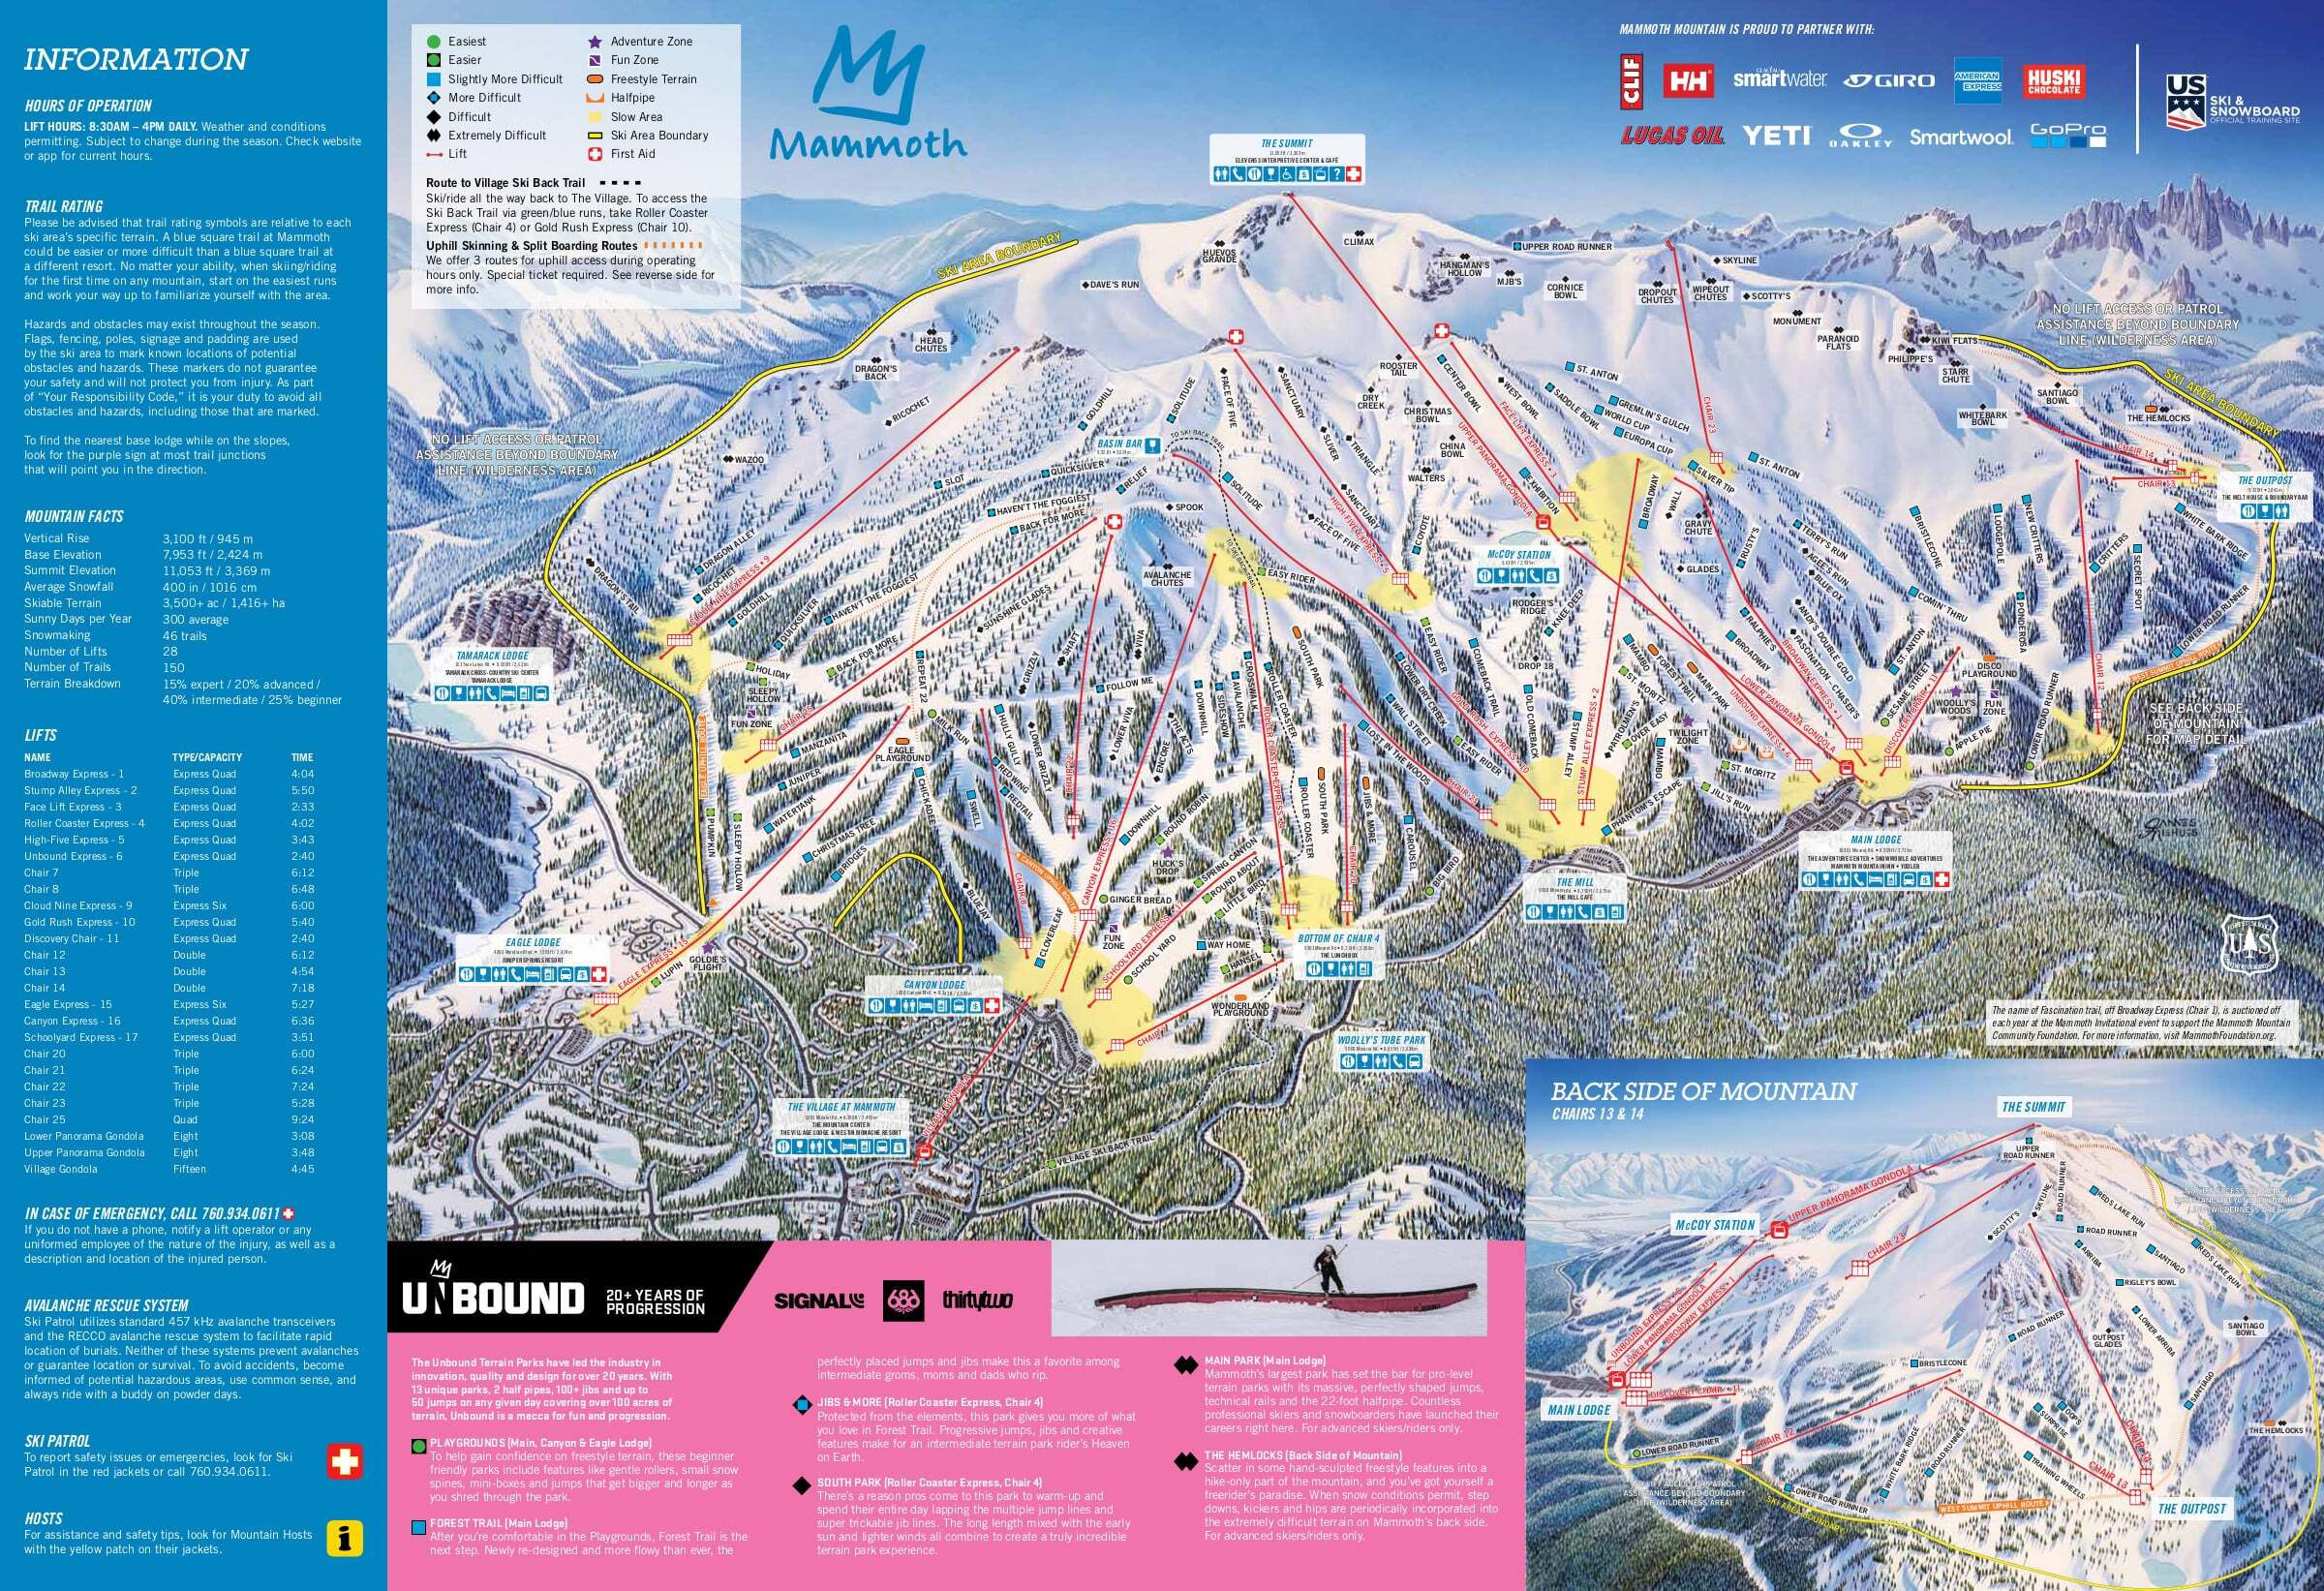 Browse the ski and snowboard runs on the Mammoth Mountain piste map below.